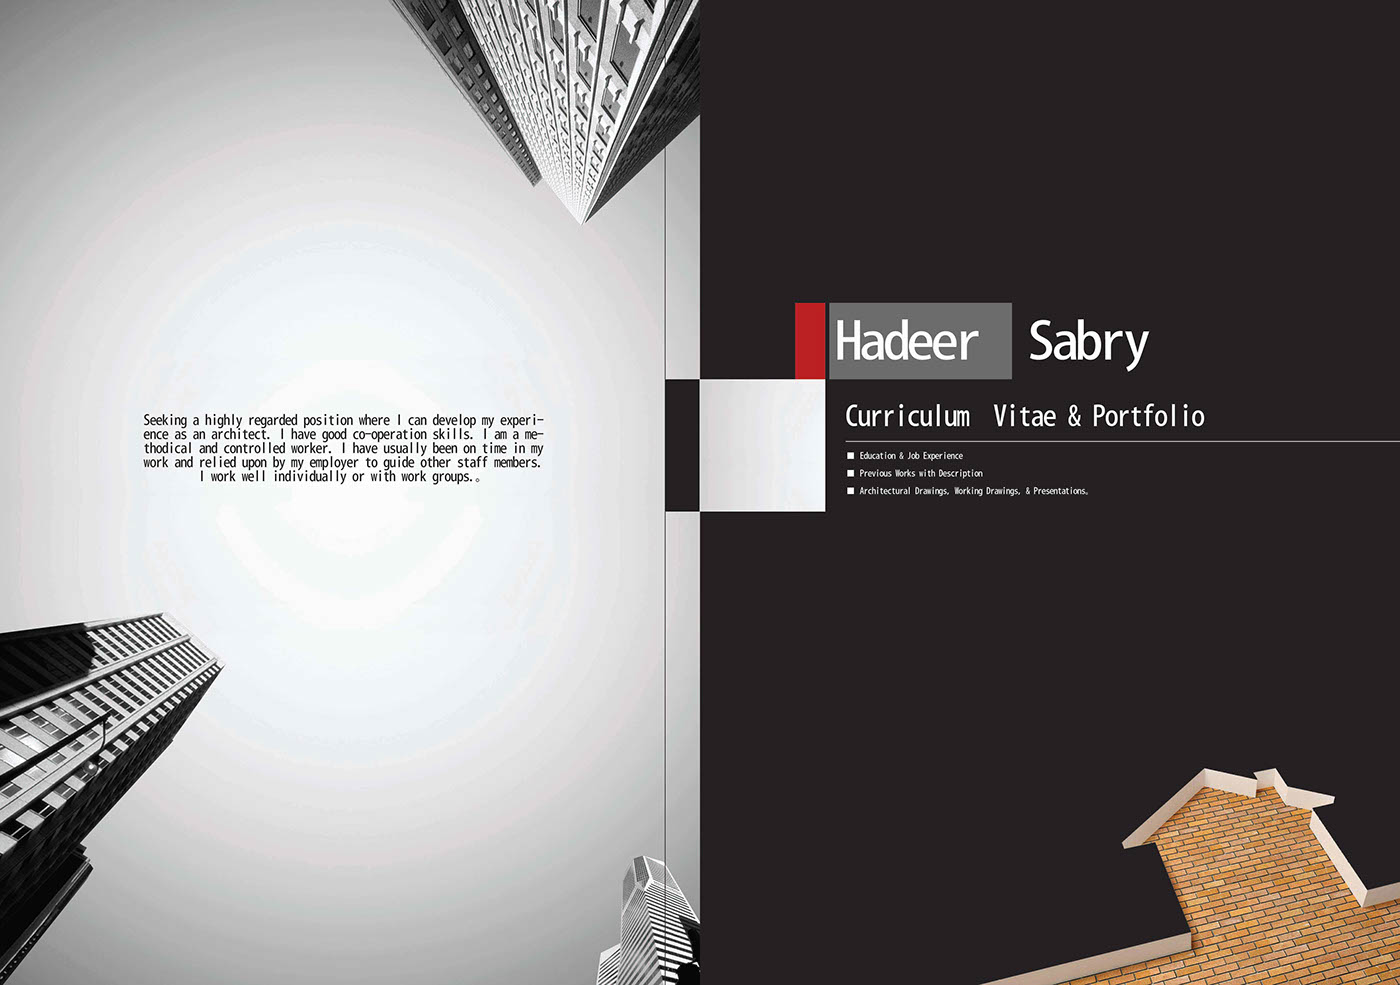 Architecture Book Cover Design ~ Hadeer sabry architect s portfolio on behance